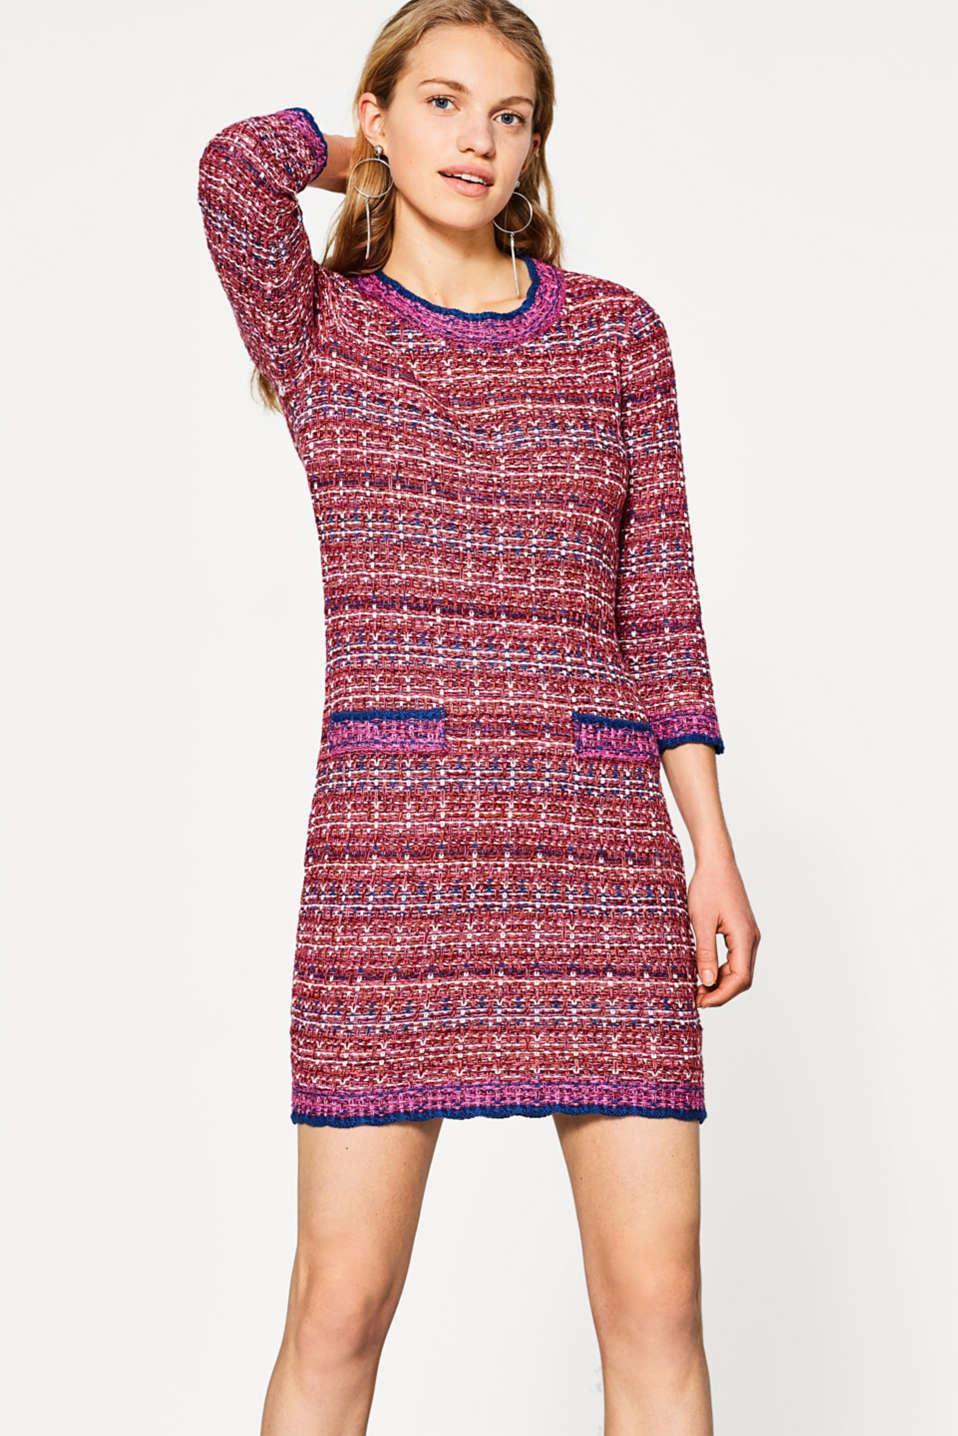 Esprit - Knitted dress in a tweed look, cotton blend